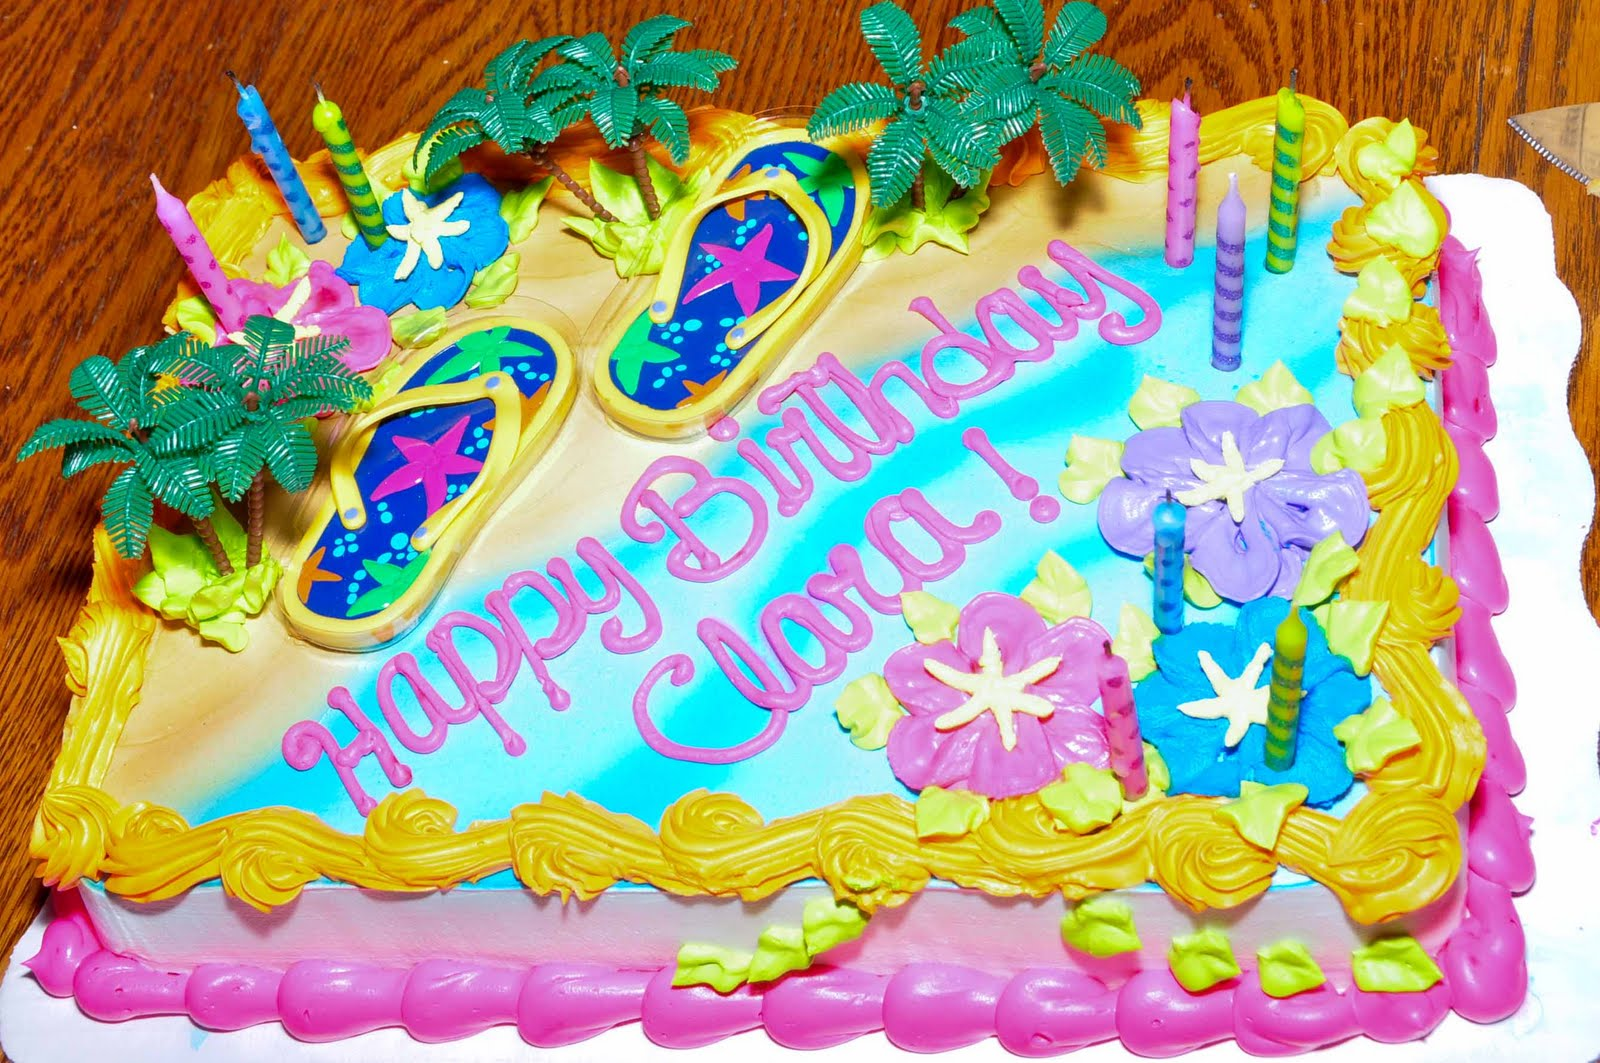 happy birthday clara ; DSC_8302-37